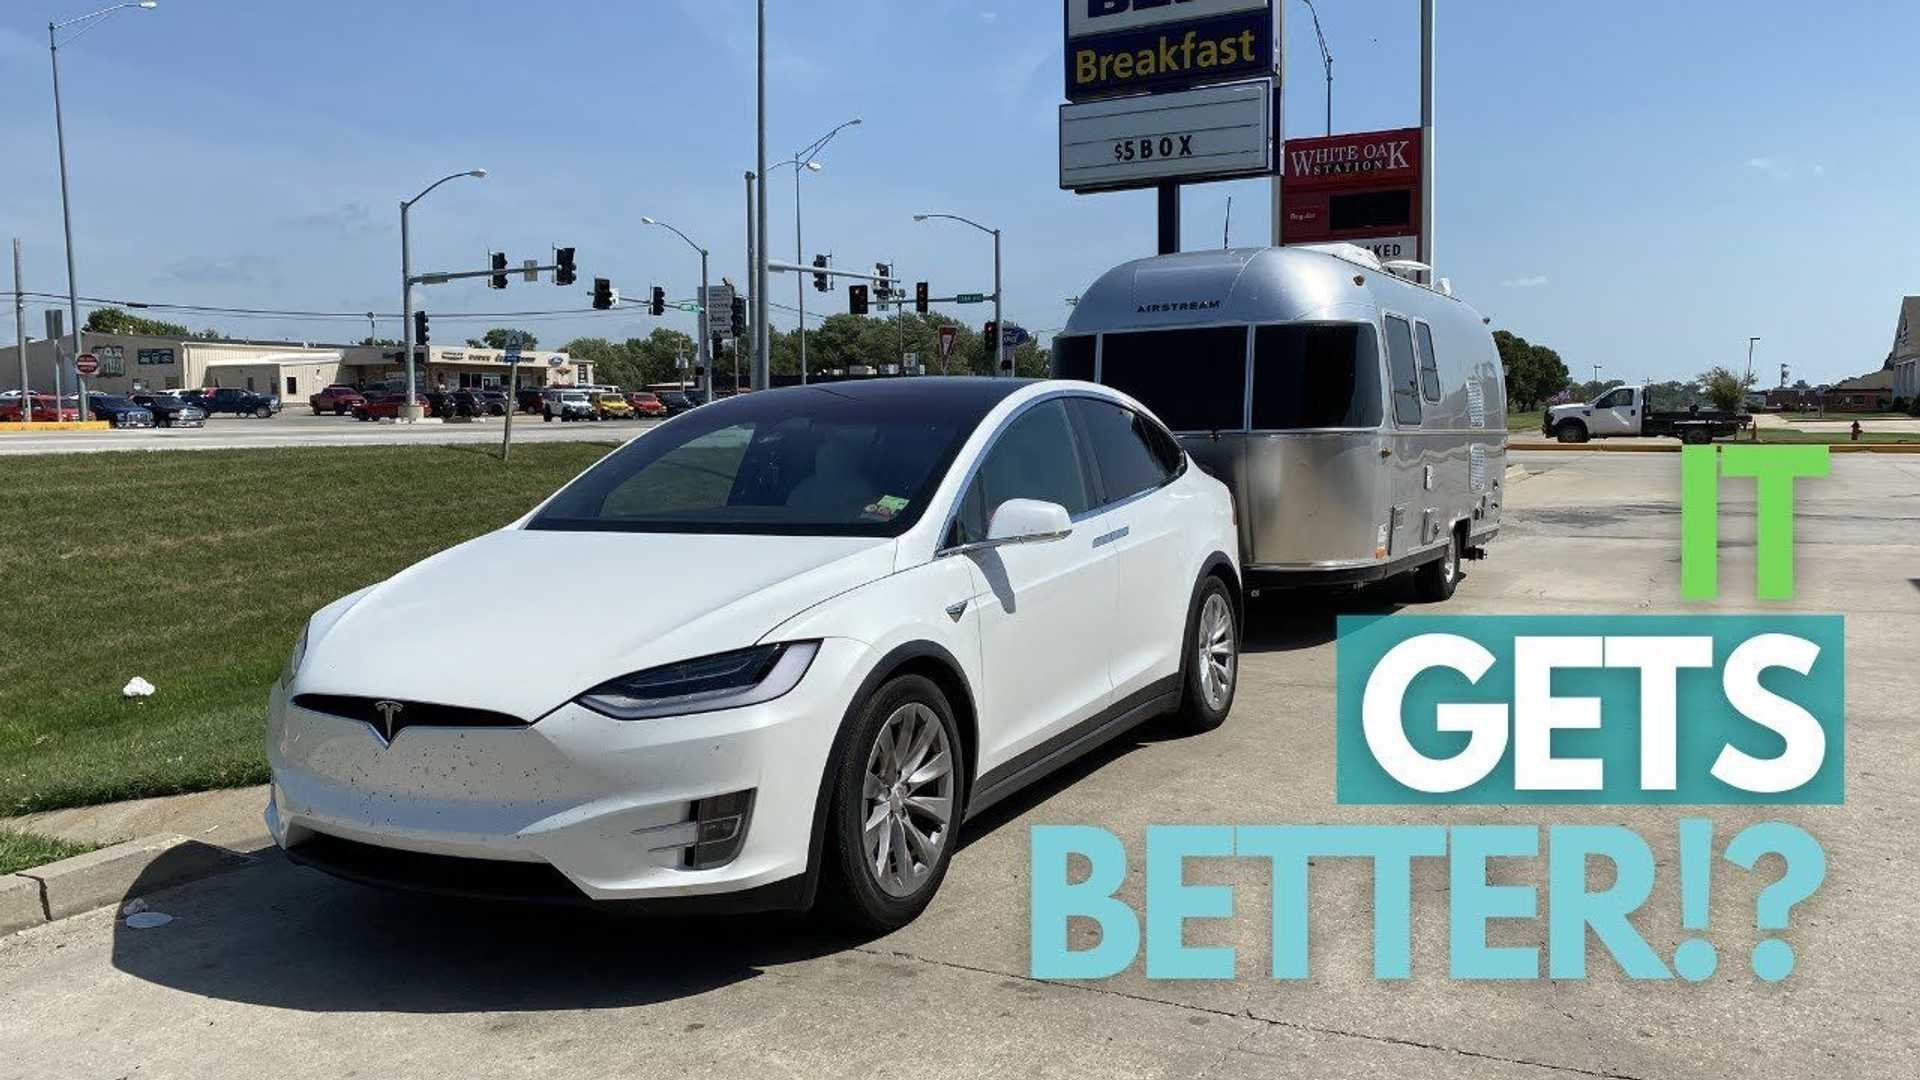 Tesla Model X Airstream Towing Part 2 Proves Many Variables Impact Range